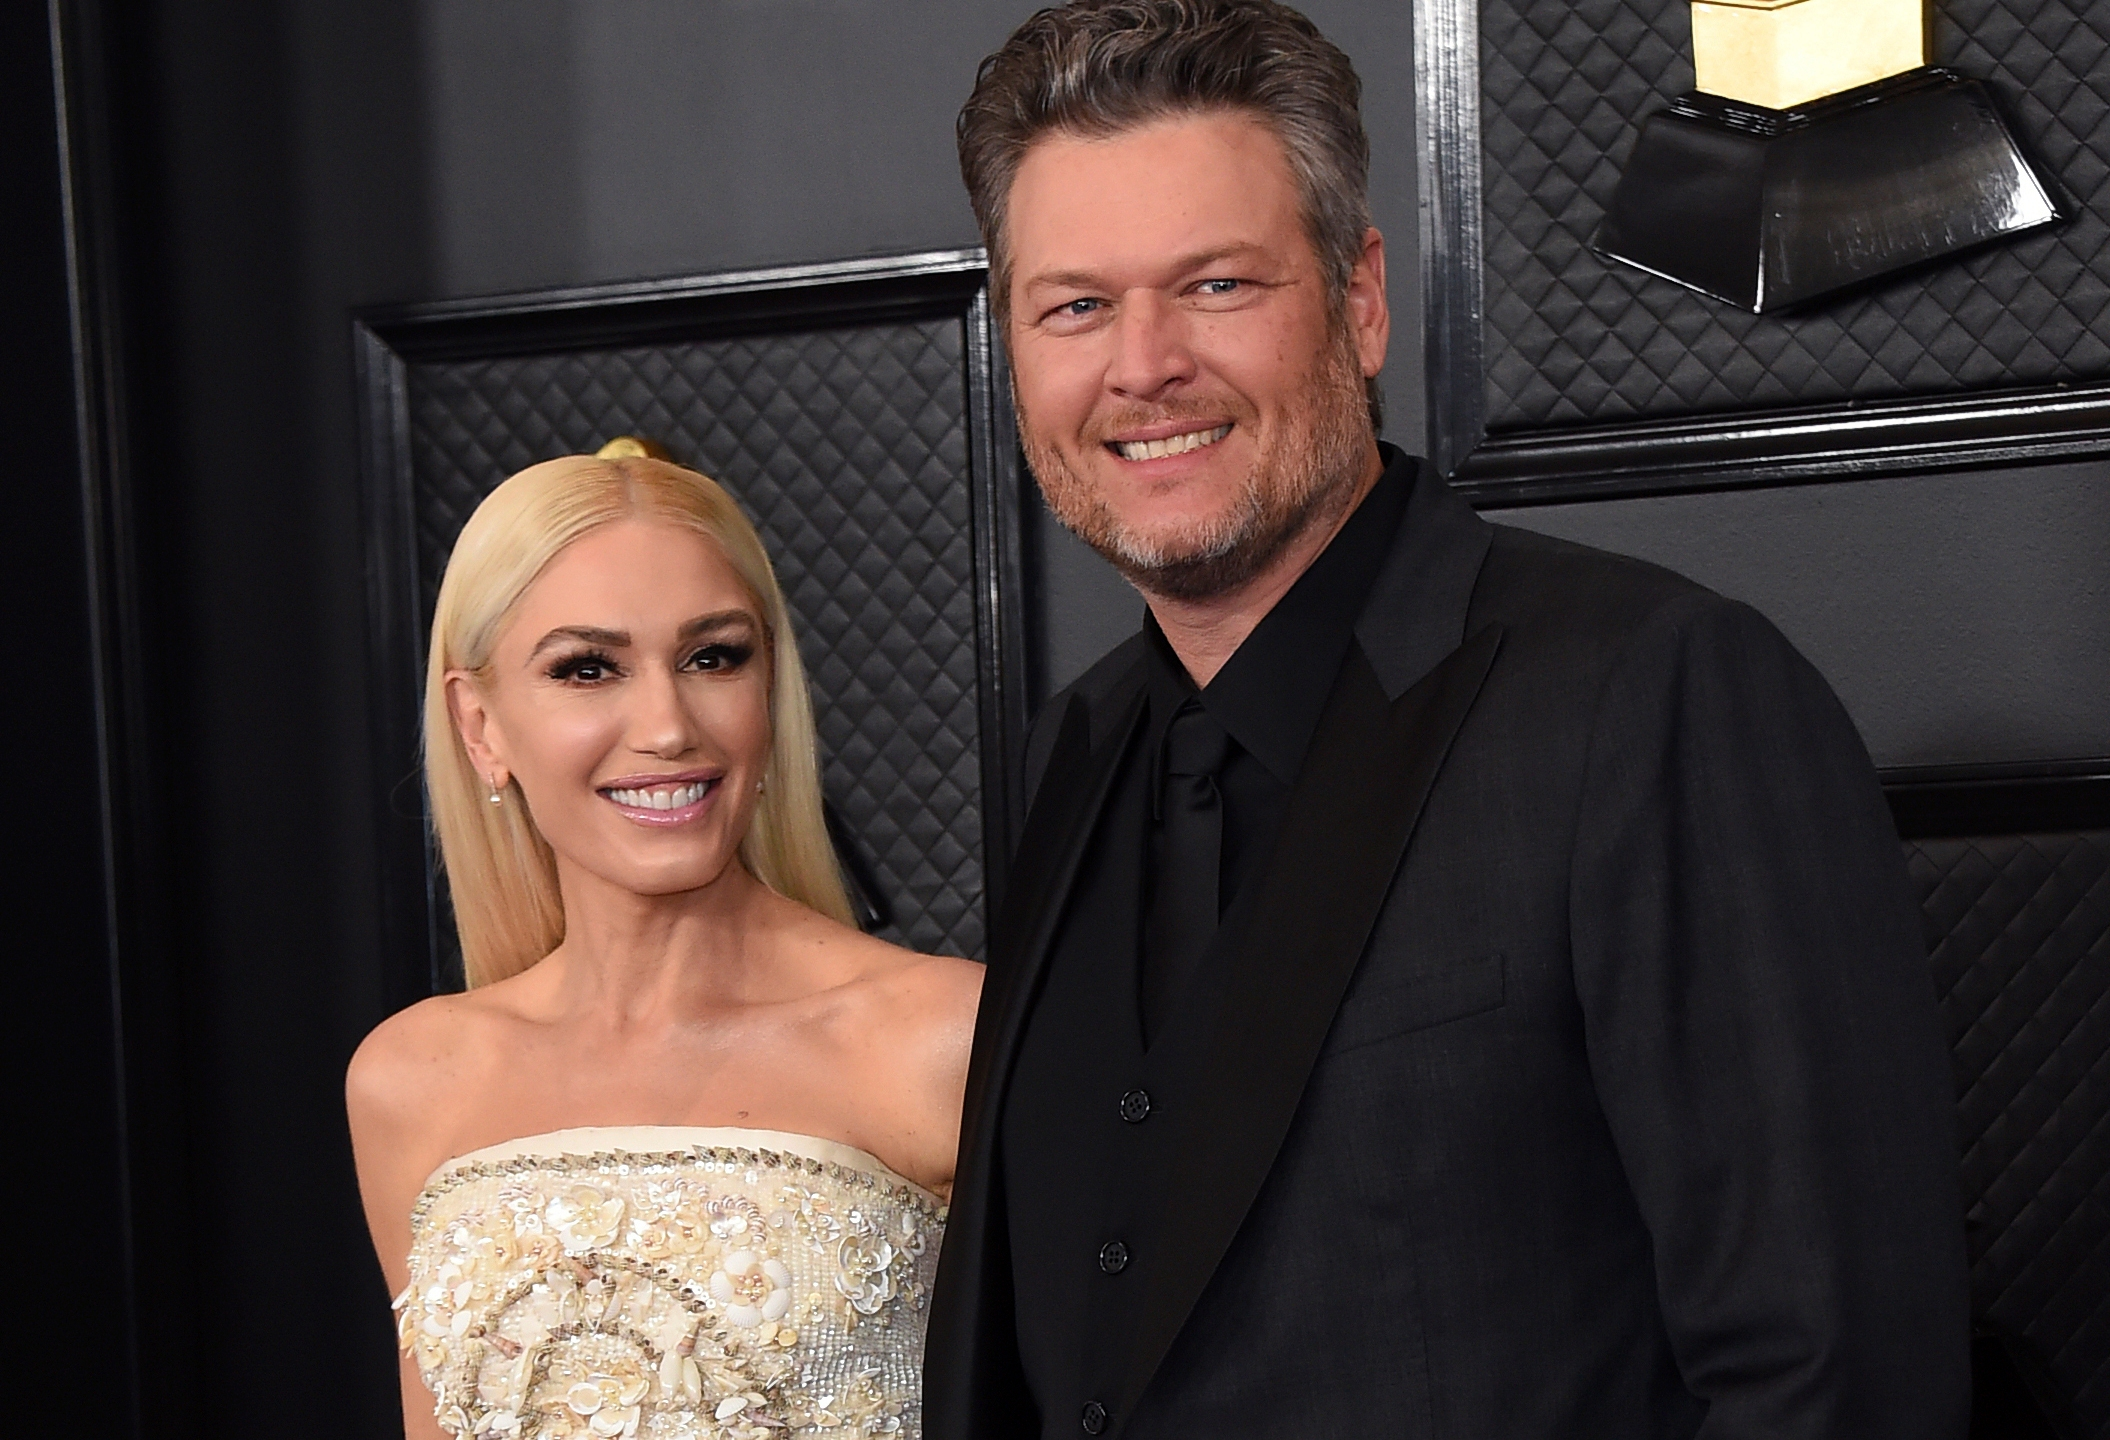 Gwen Stefani, left, and Blake Shelton arrive at the 62nd annual Grammy Awards in Los Angeles on Jan. 26, 2020. (Jordan Strauss/Invision/Associated Press)